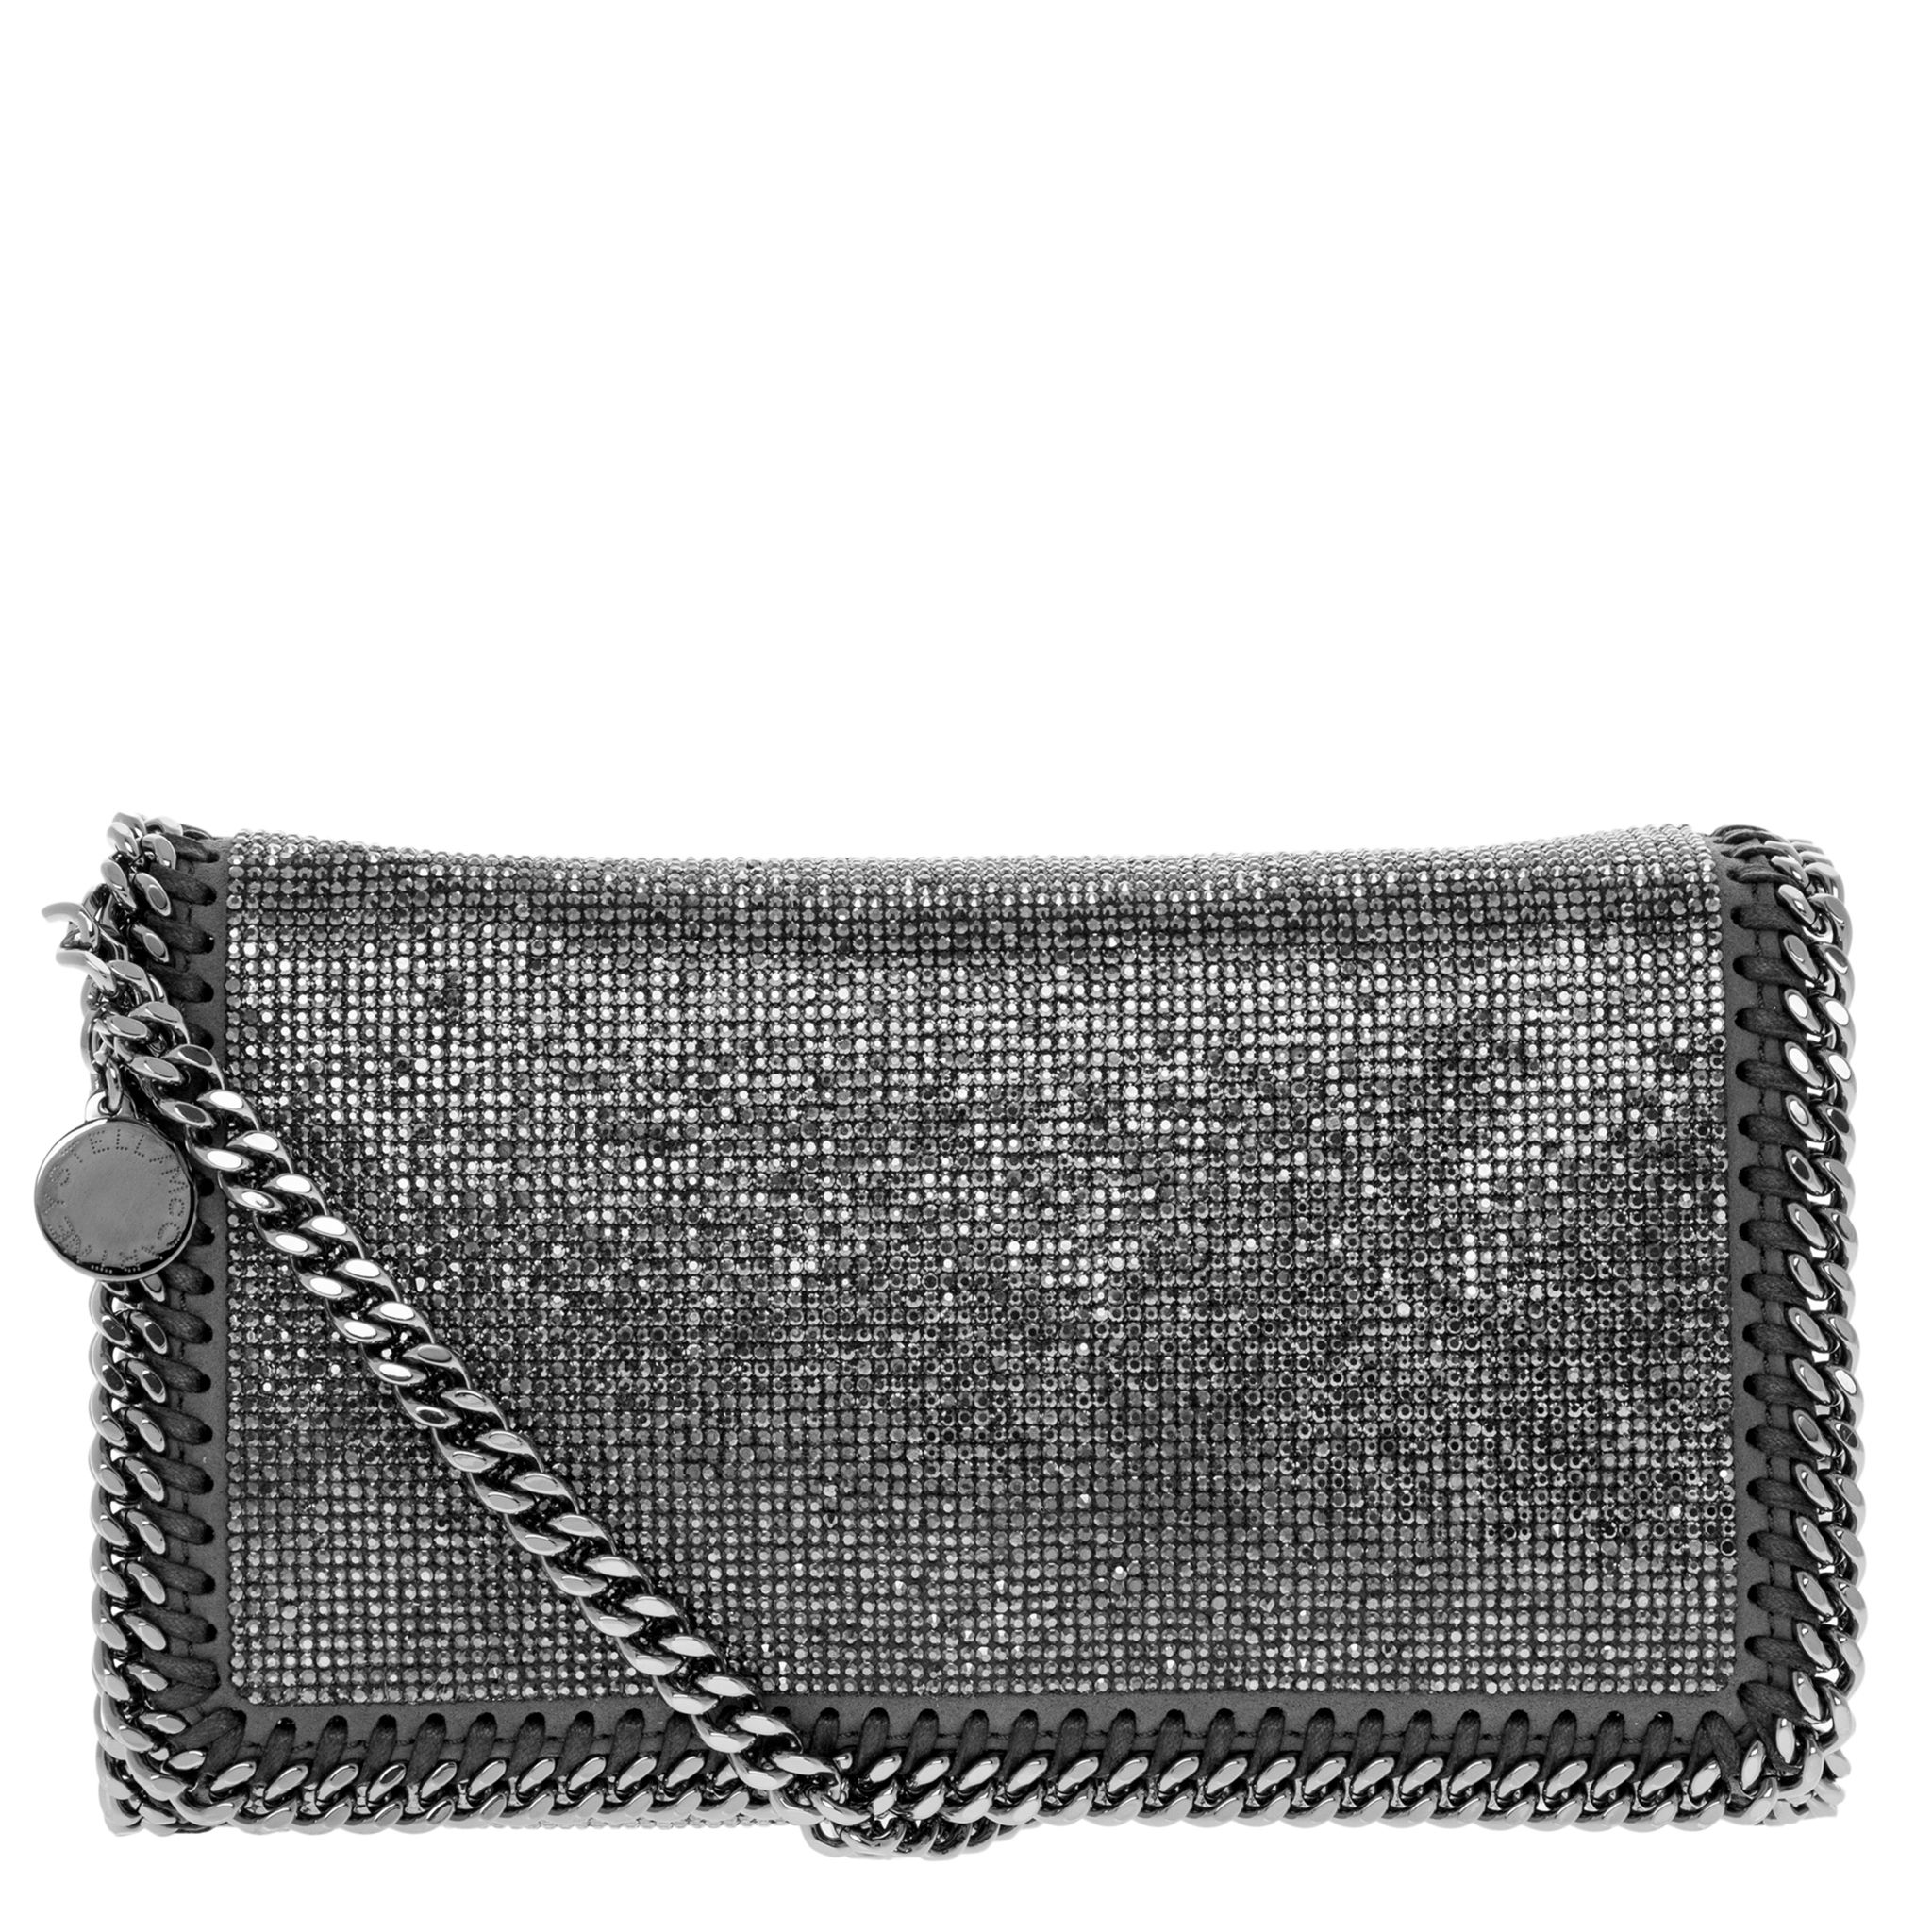 Stella McCartney Falabella Crystal Stones Chain Trim + Strap Crossbody Bag 38bd2cee30